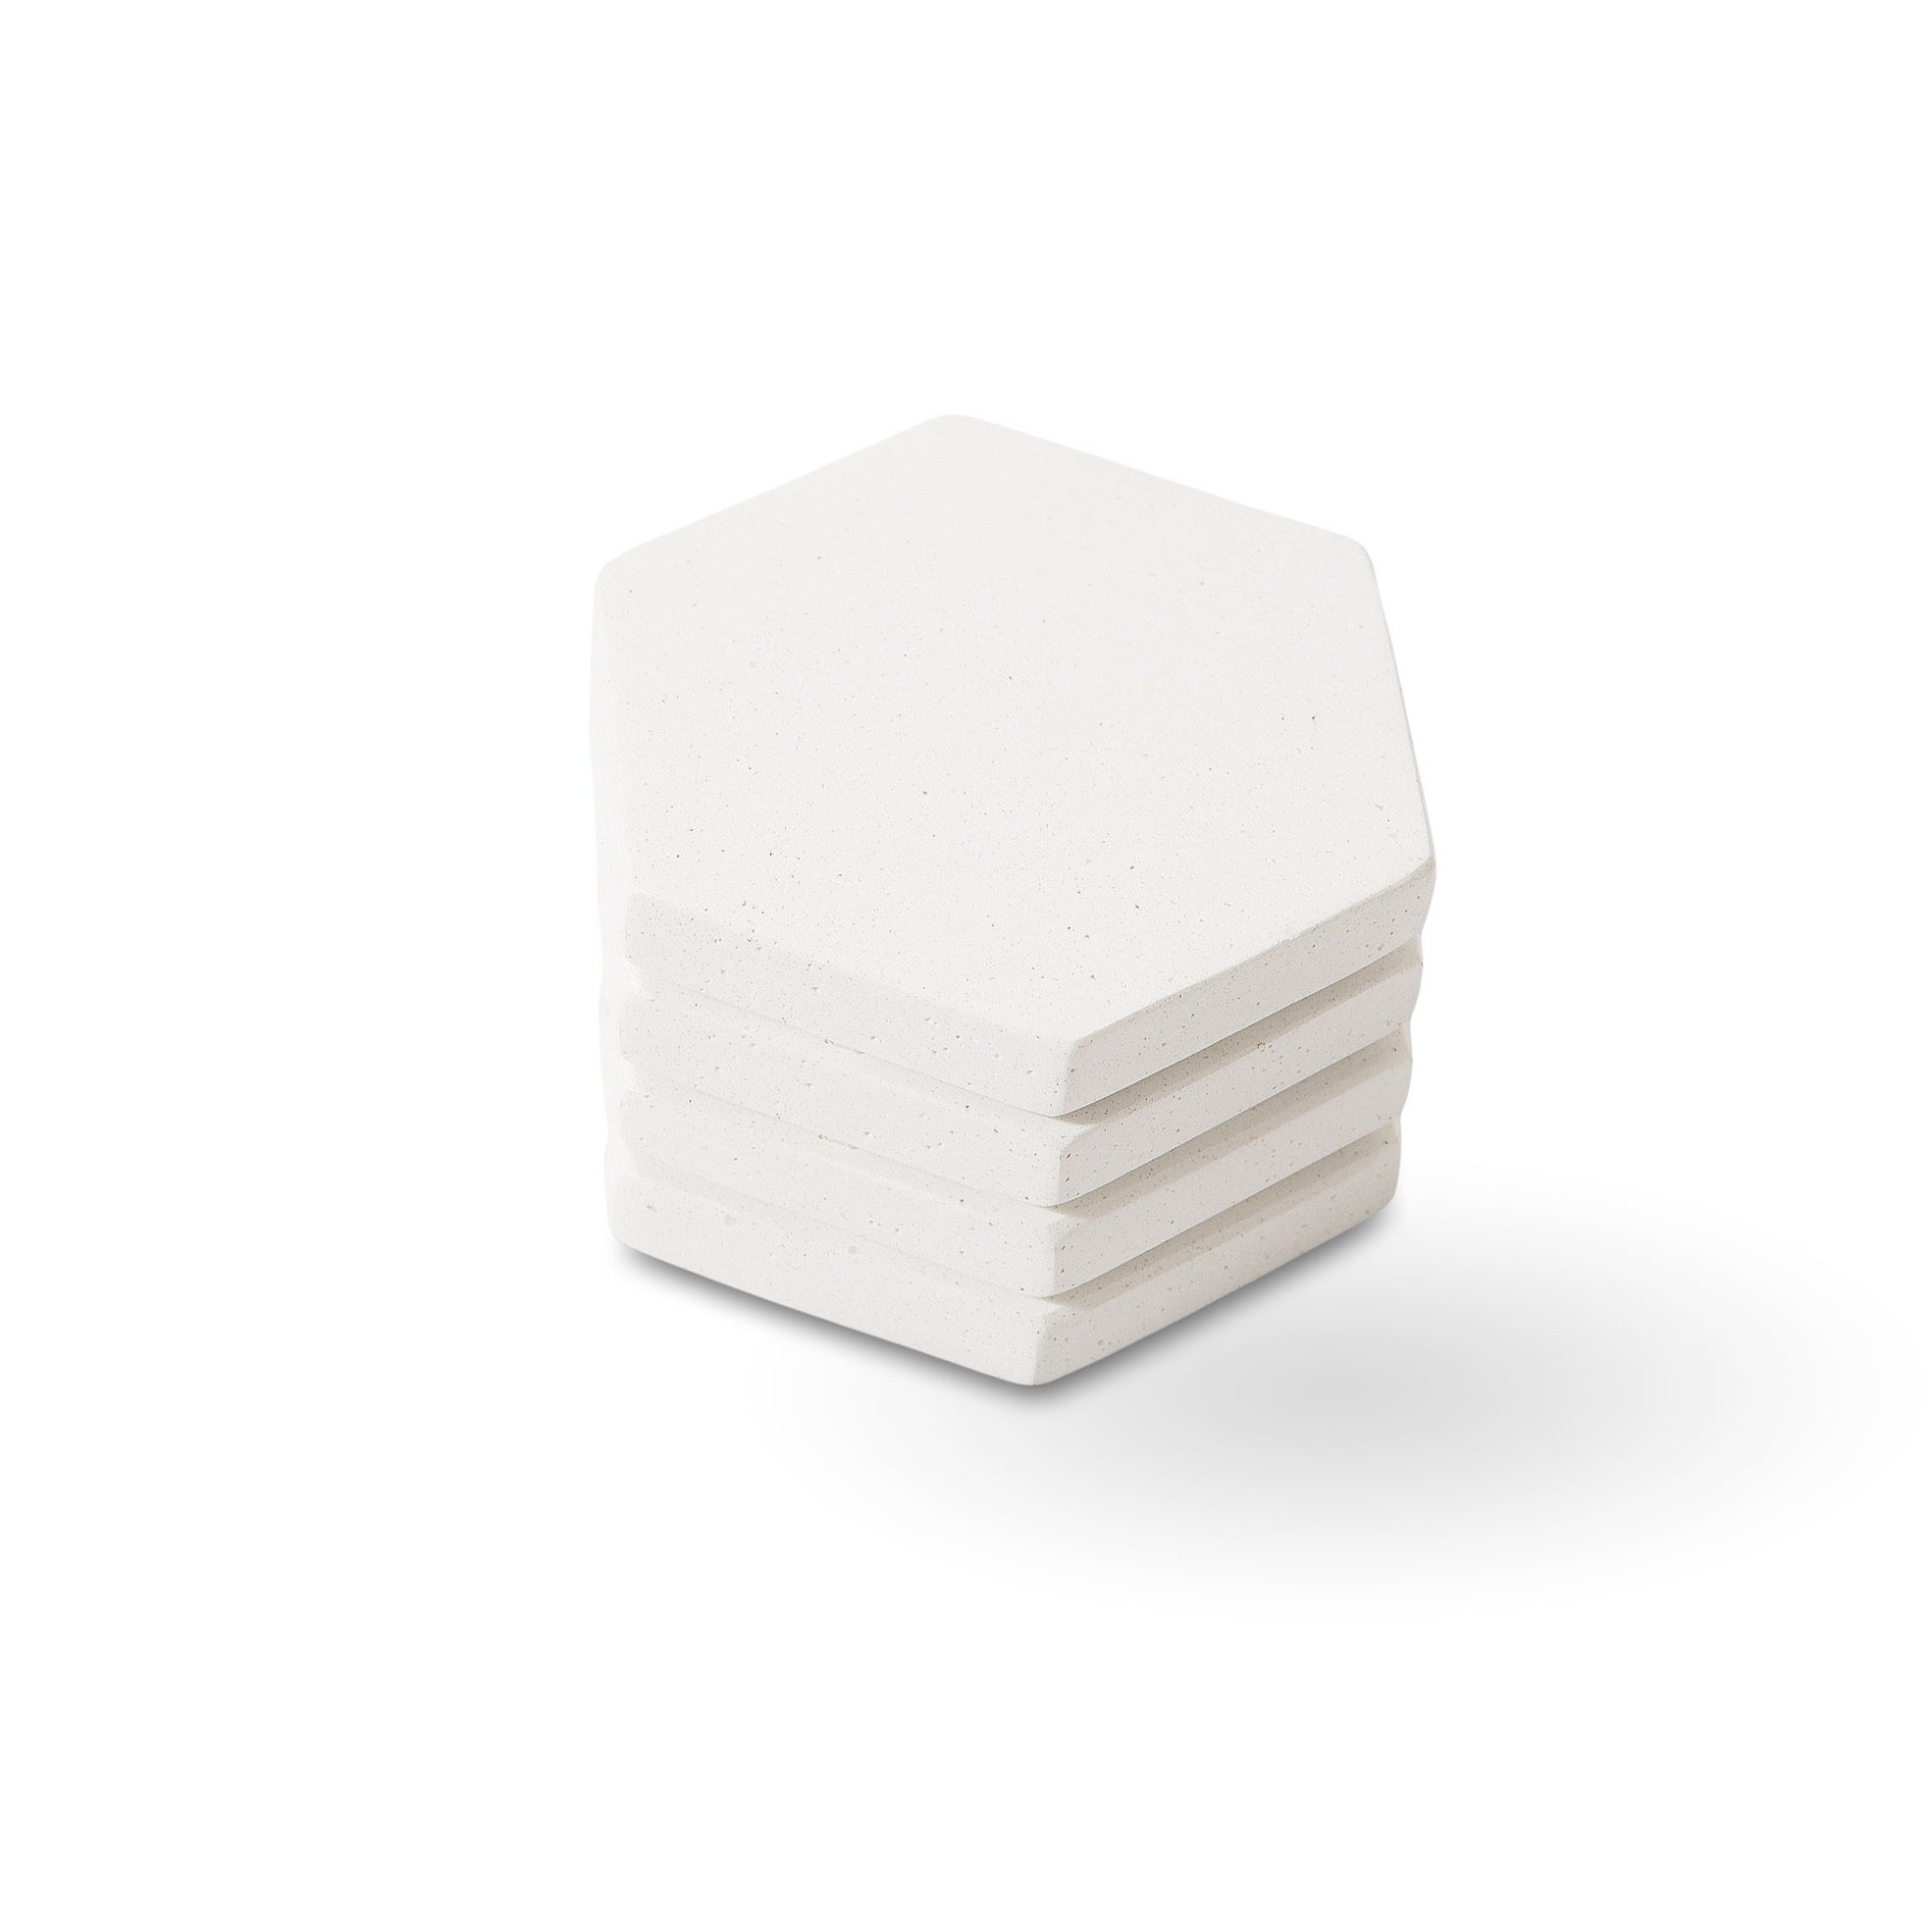 Anthology Honeycomb Coasters - White (Set of 4)